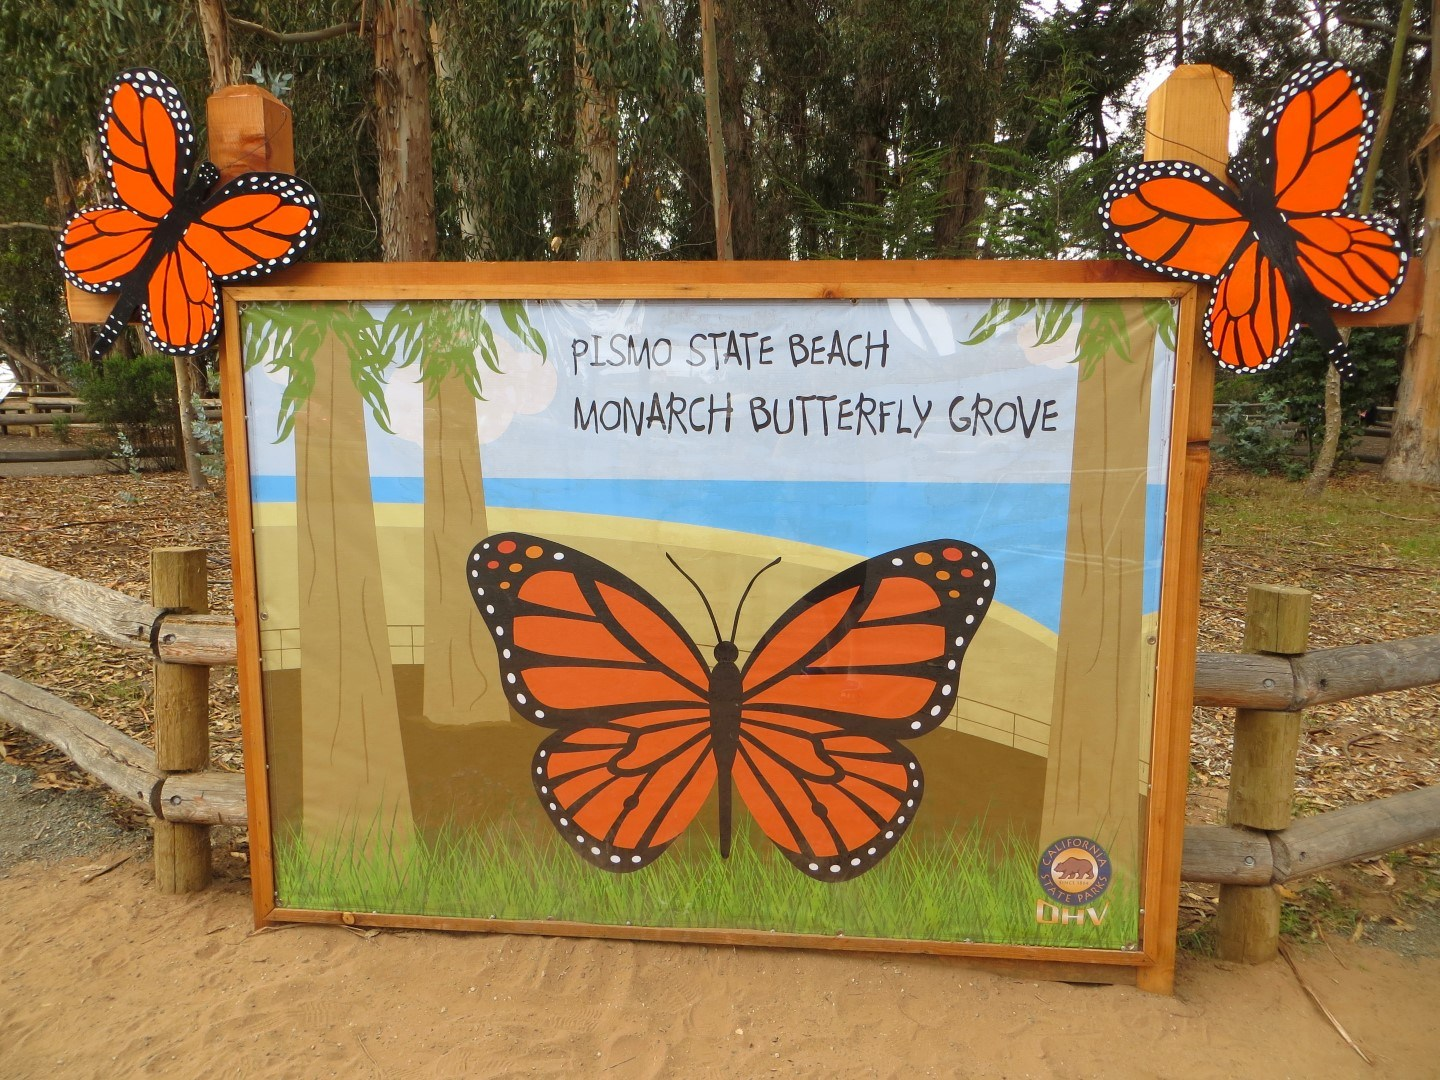 At North Beach Located Off Of Highway 1 In Pismo High Season Goes From November Through February And Highlights The Millions Monarch Erflies